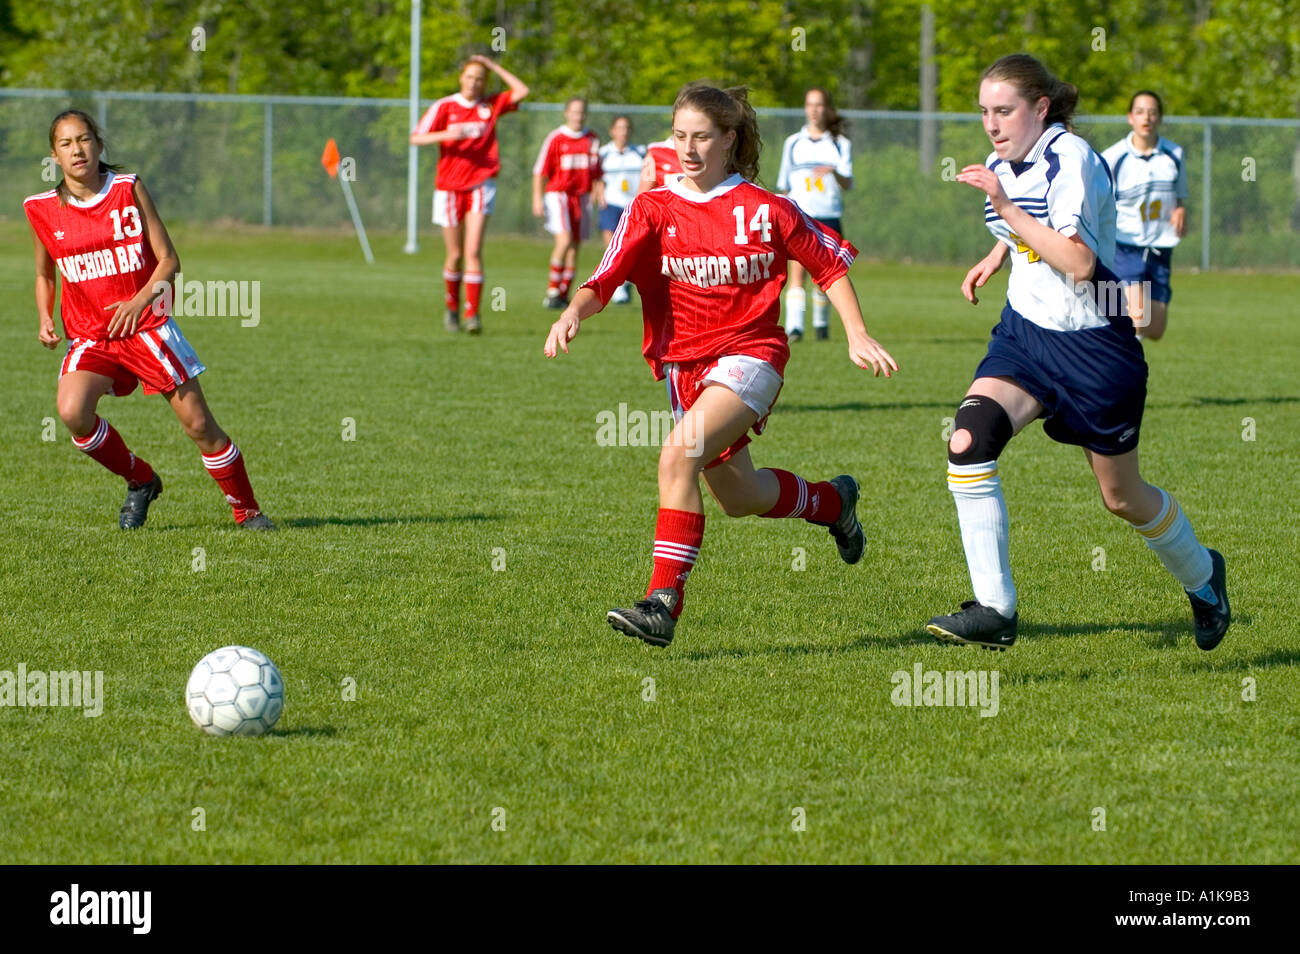 High School-weibliche Fußball-Futbol-Fußball-Action Port Huron, Michigan Stockbild